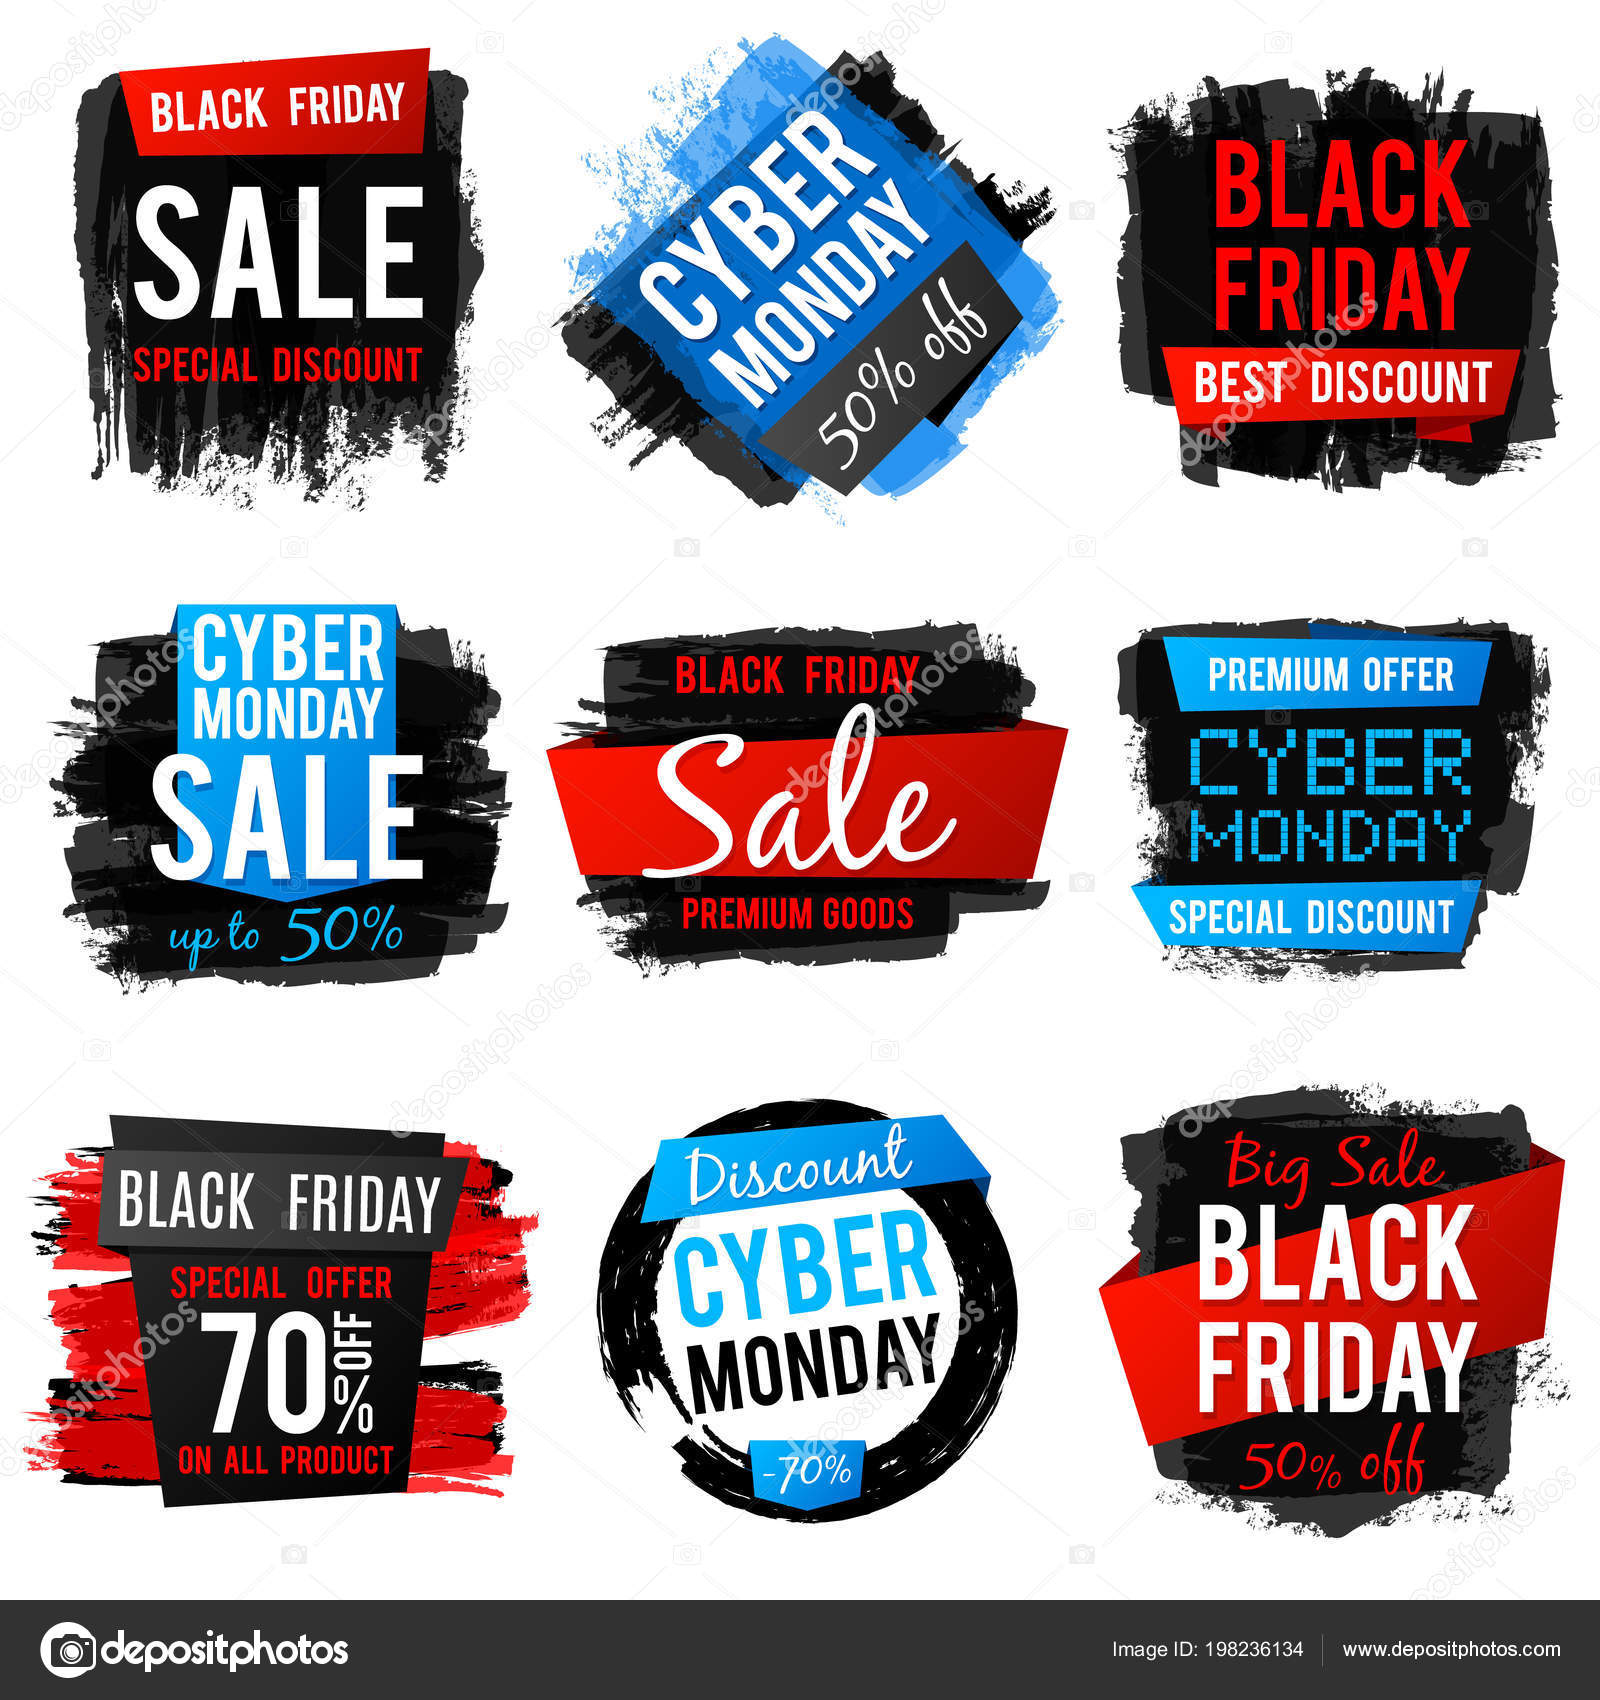 Black friday and cyber monday sale banner with big discount and best ...